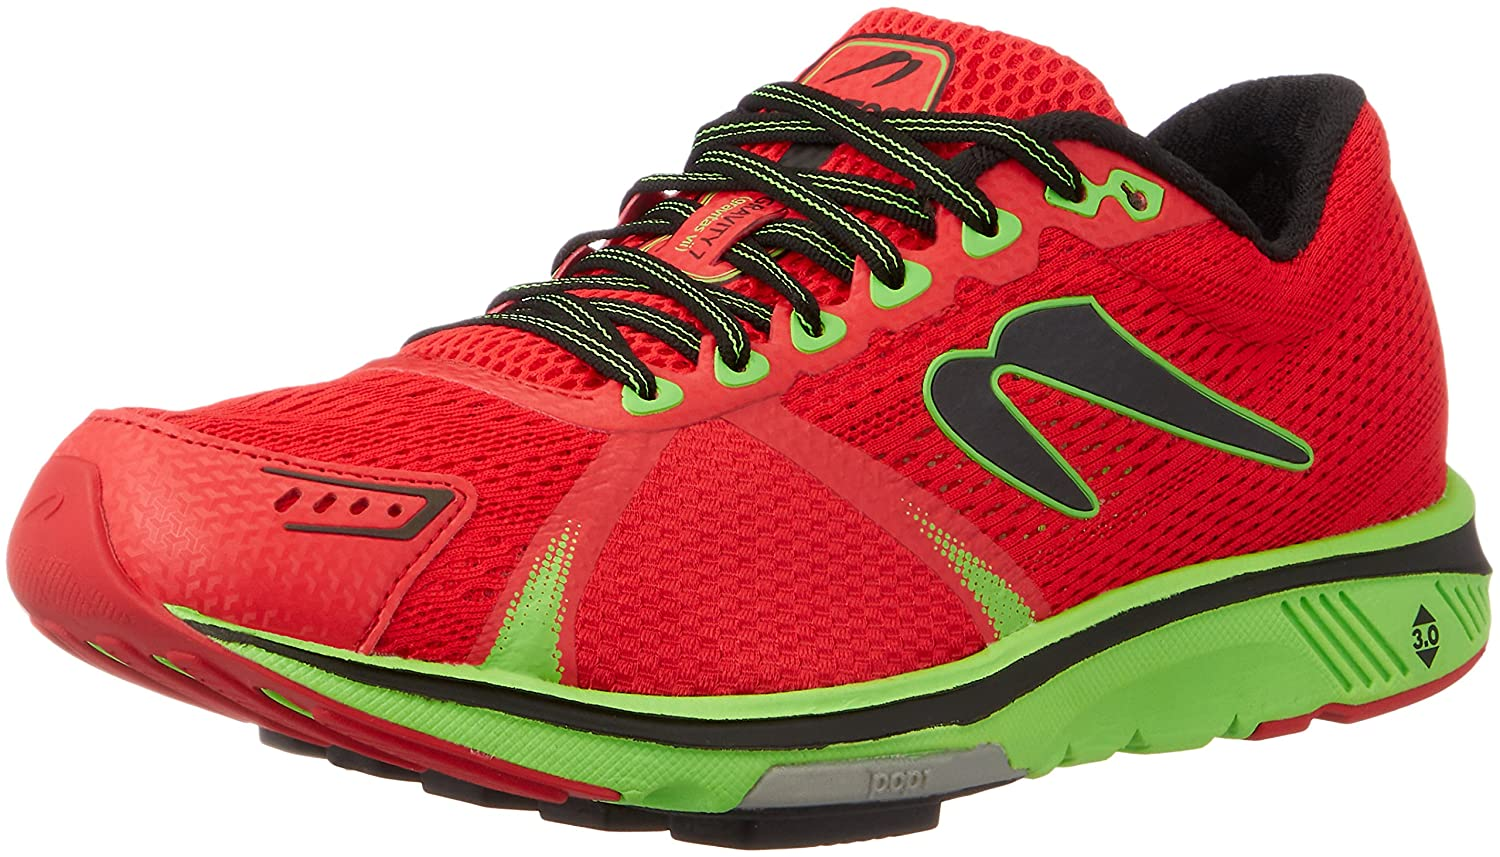 Newton Gravity 7 Best Branded Running Shoes for Men in India 2019